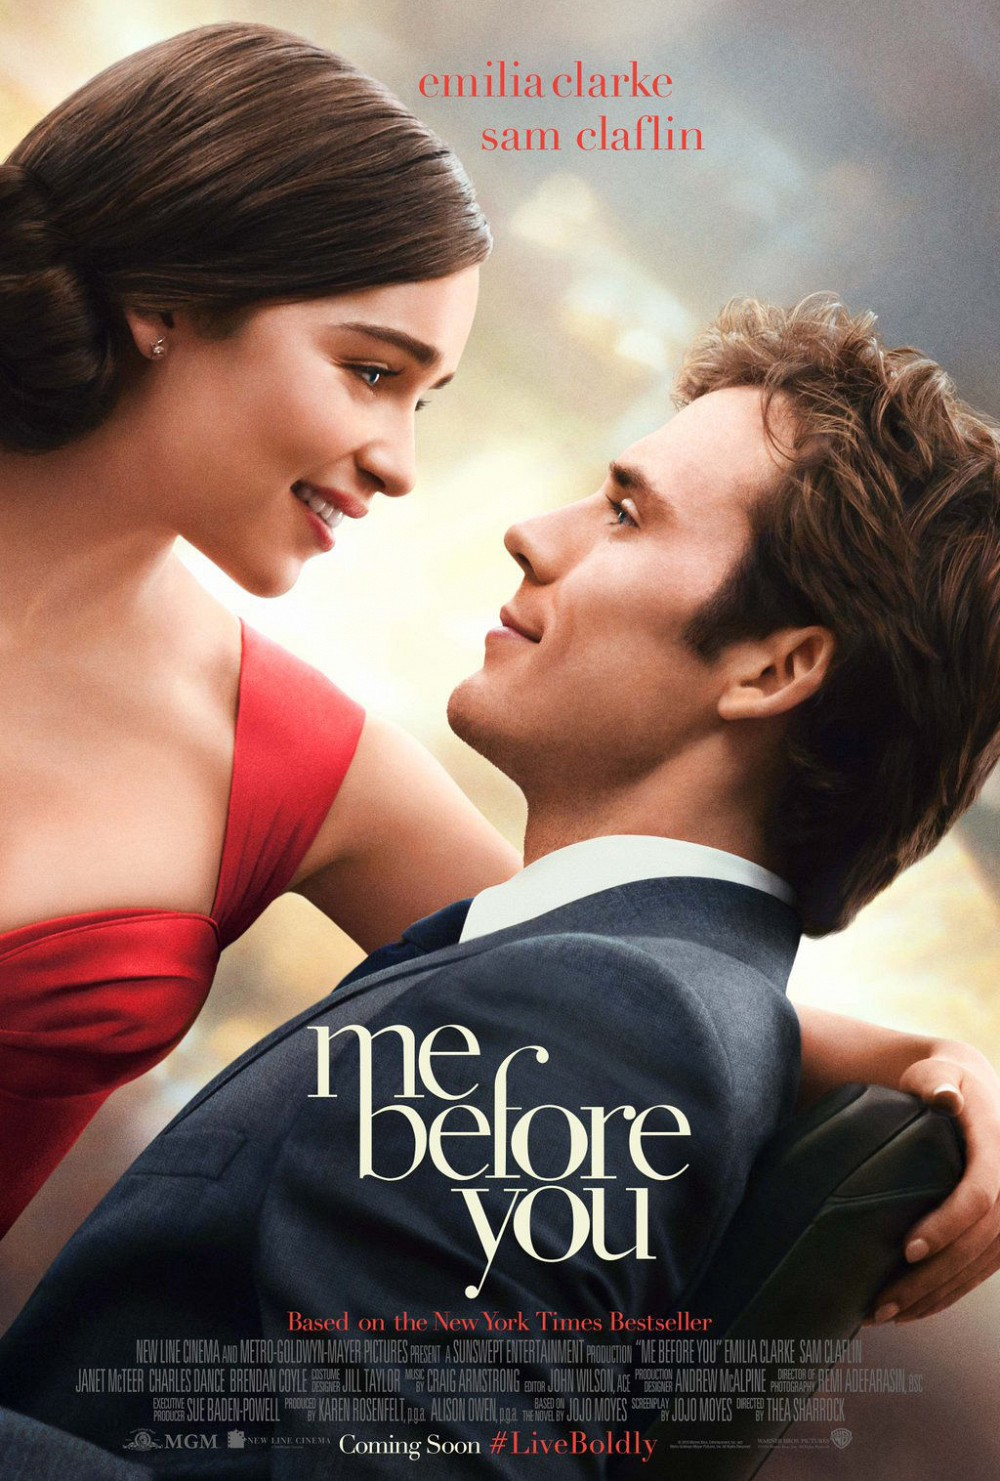 Me-Before-You-Movie-Poster.jpg